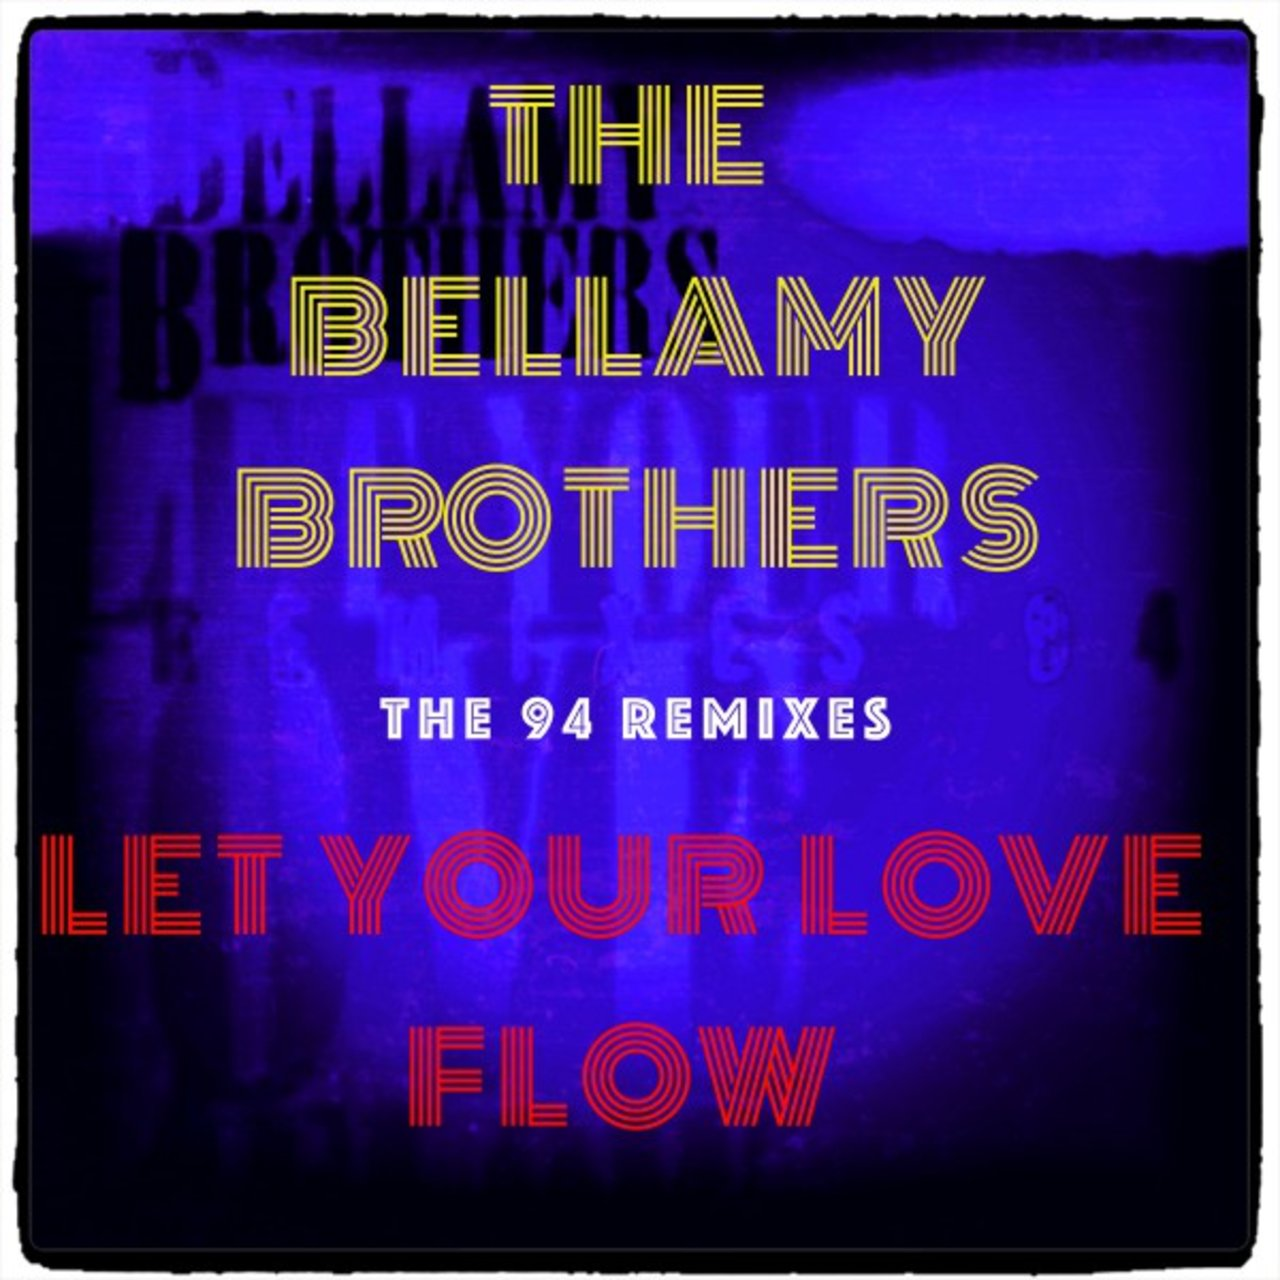 Let Your Love Flow (The 94 Remixes)